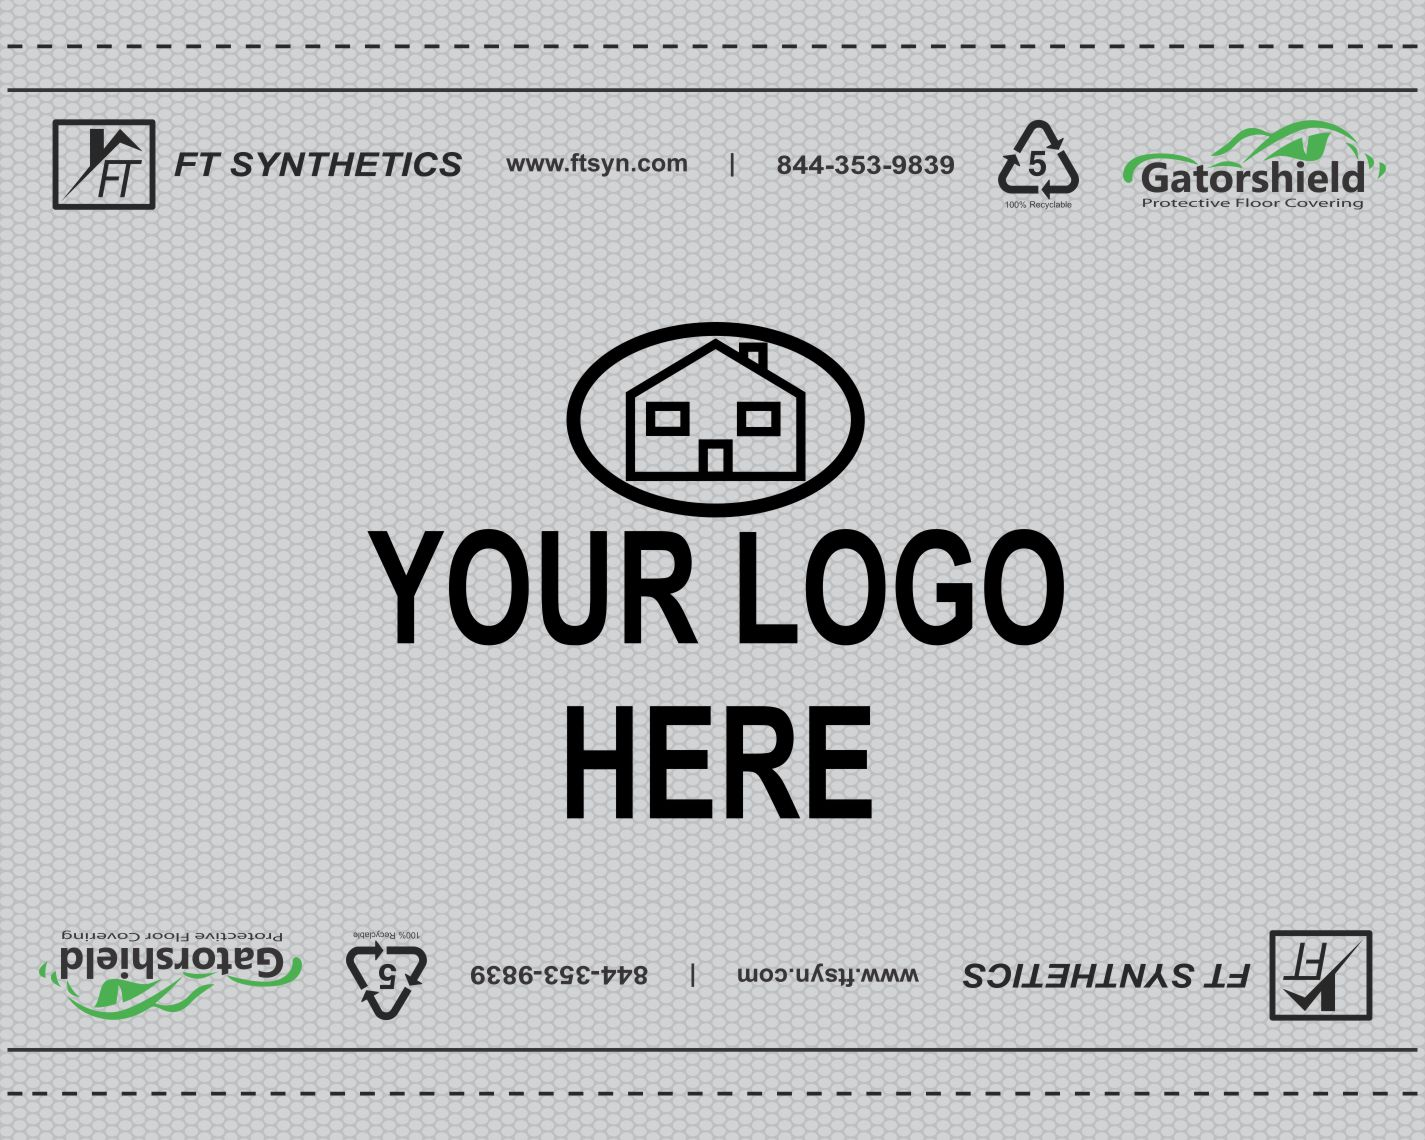 FT-gatorshield-your-logo-here-template